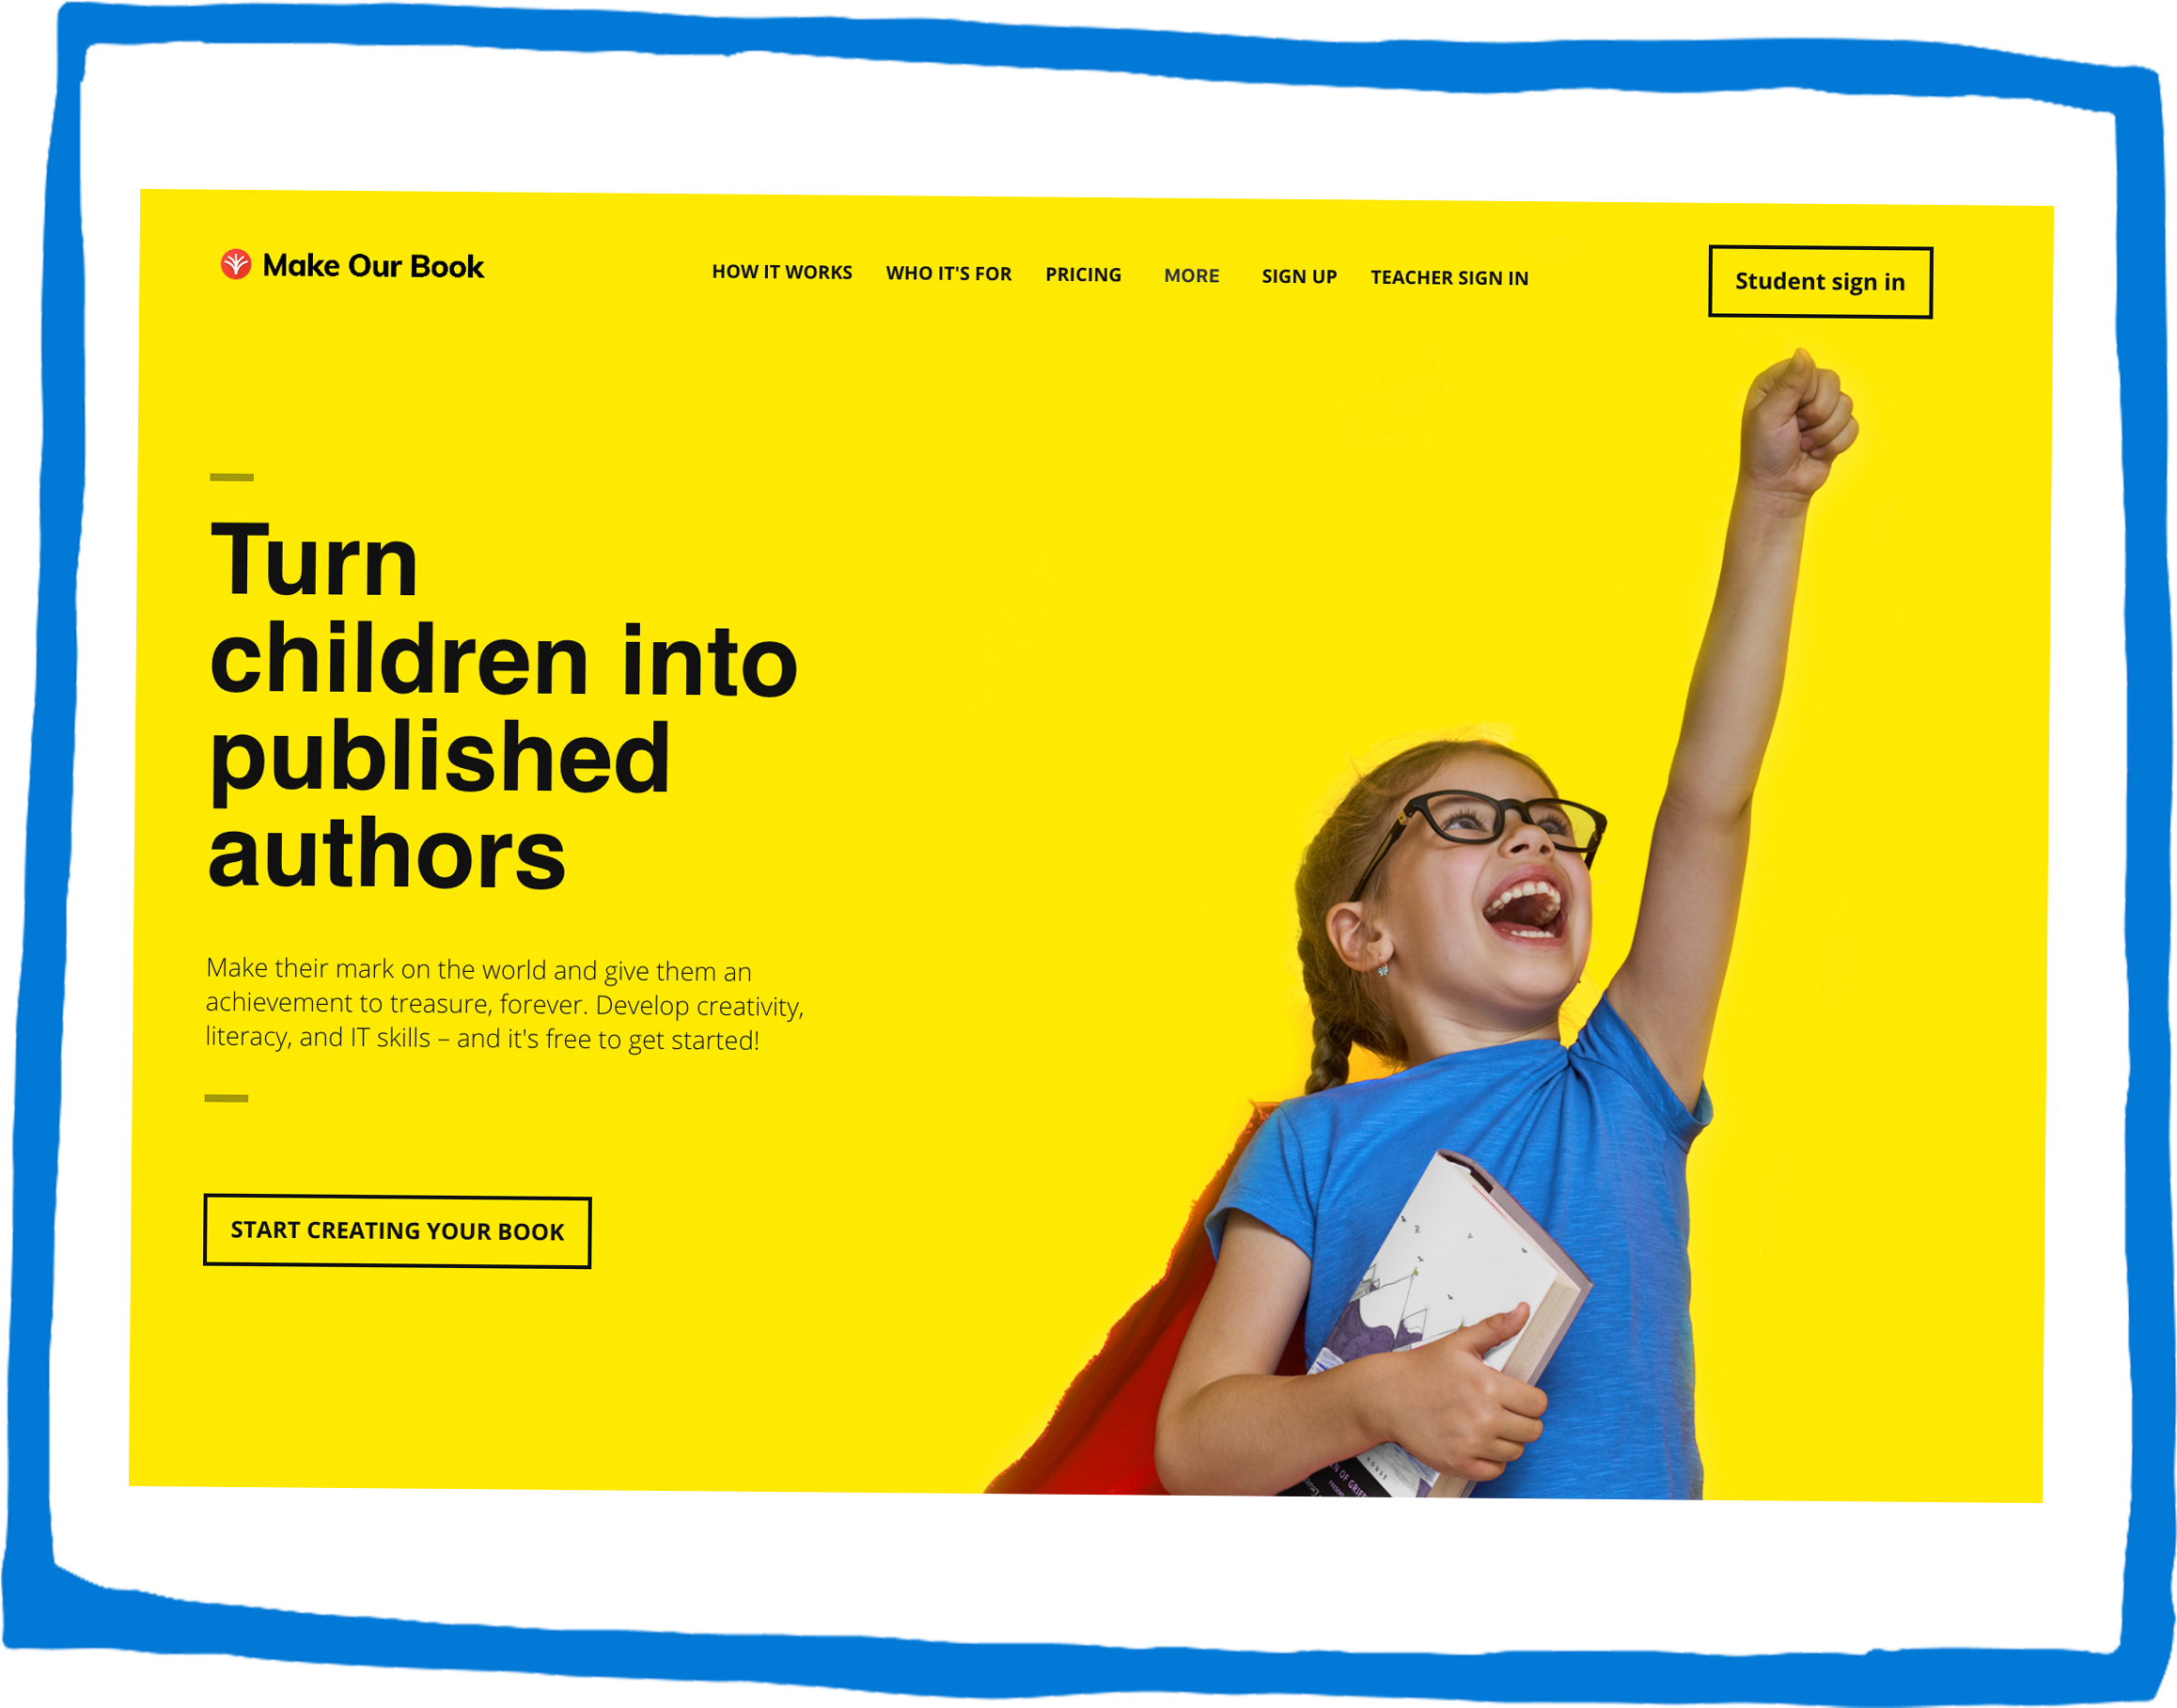 screen shot of the Make Our Book homepage, with a girl dressed as superwoman holing at book and the strapline 'Turn children into published authors'